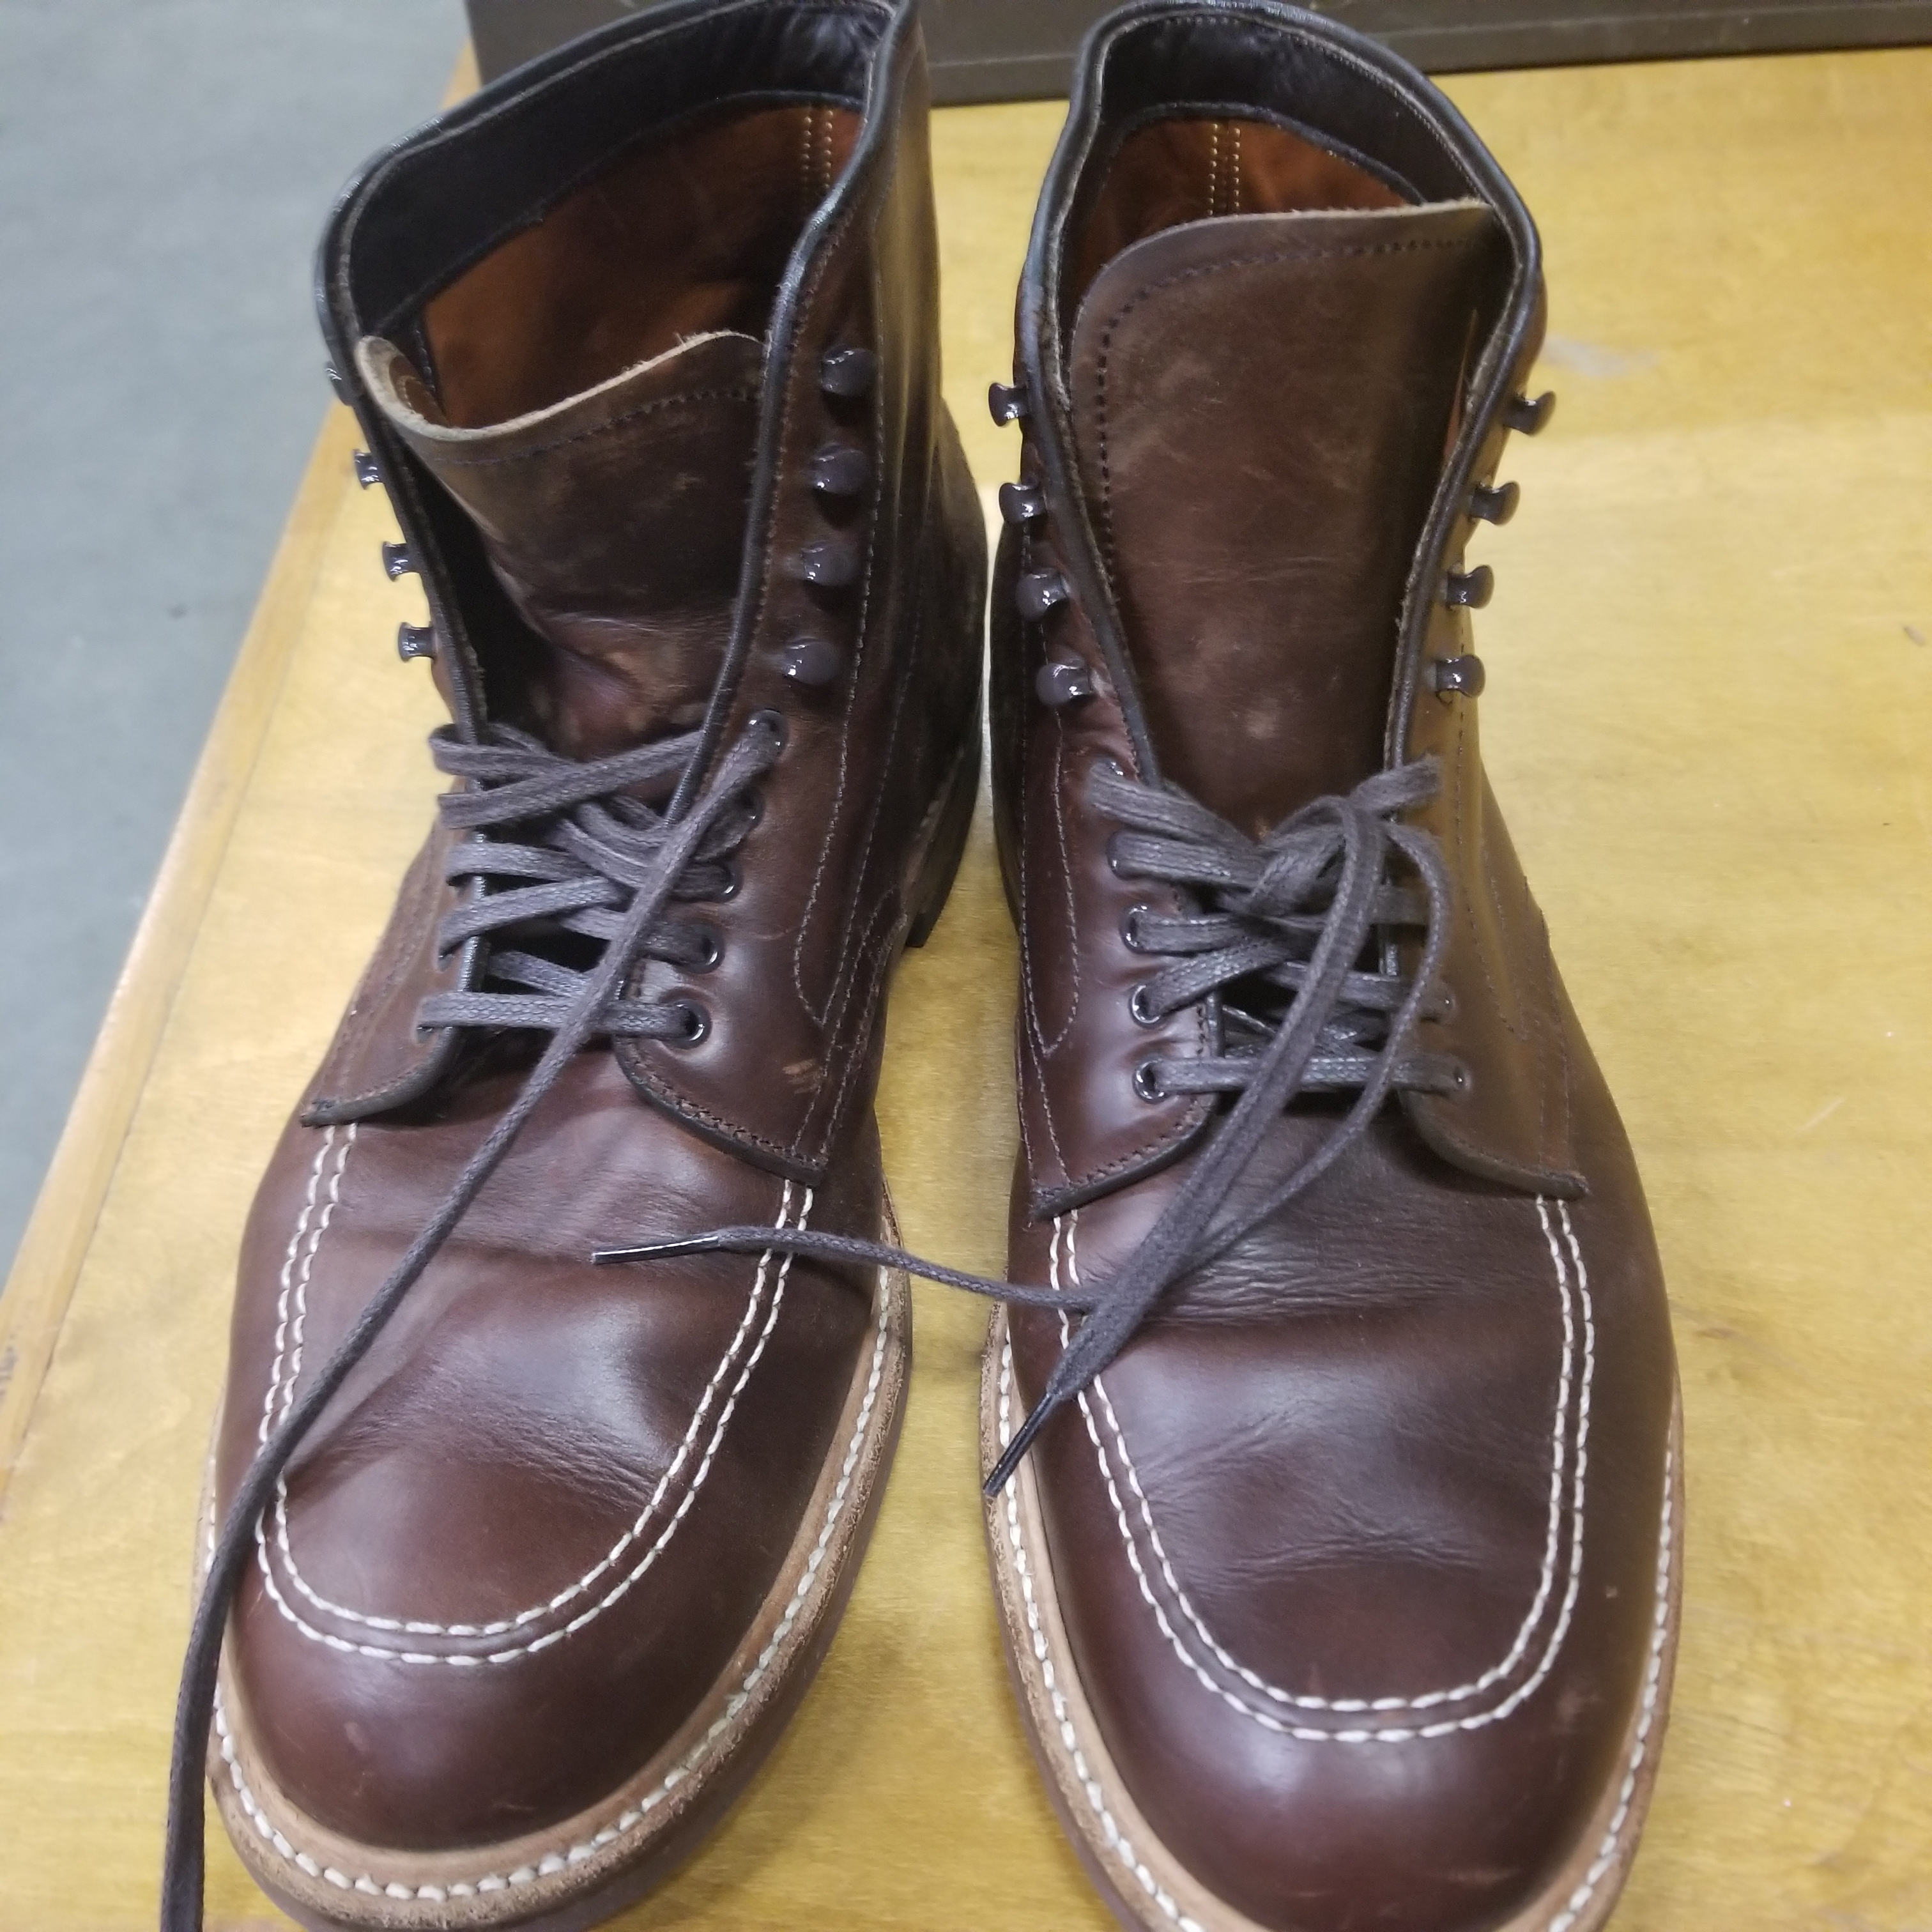 How to Care for Alden Shoes - 403 Indy Boots - Before